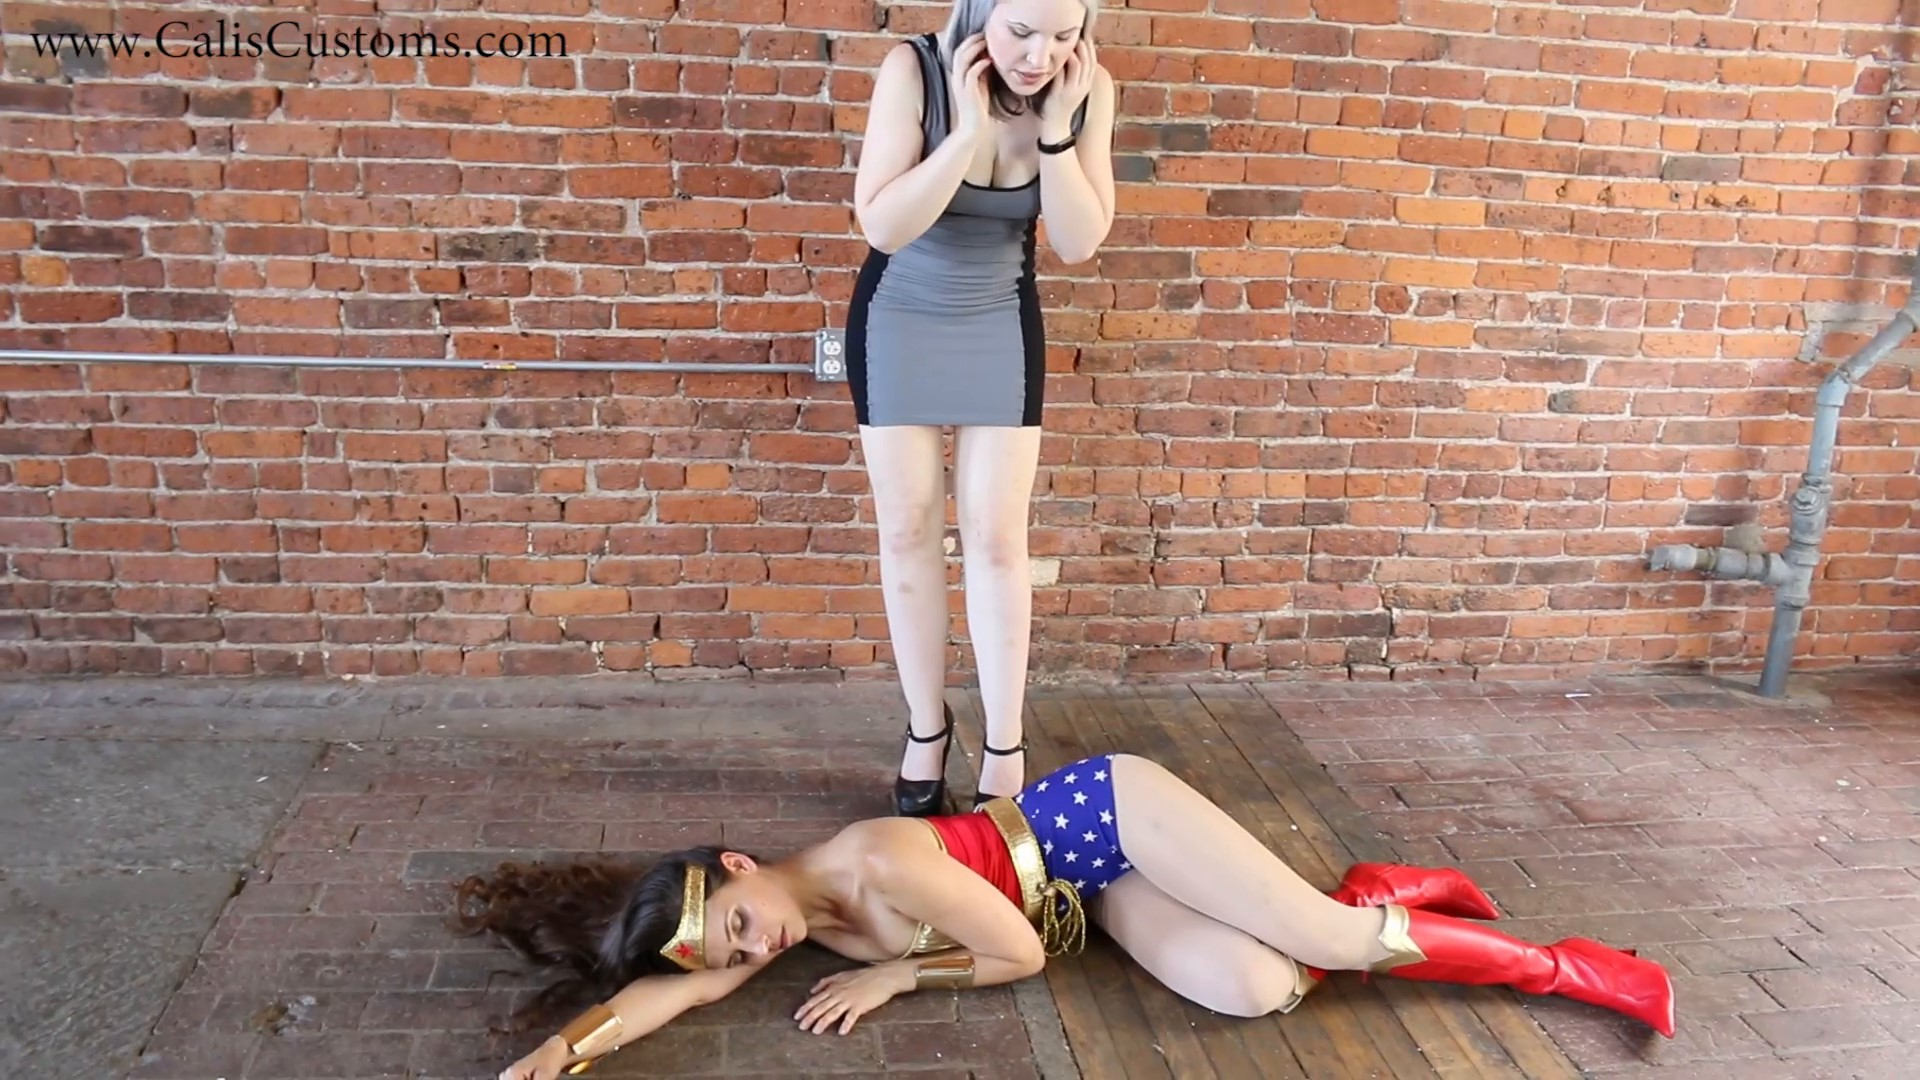 CALI The Wonder Woman KO Trap (7)